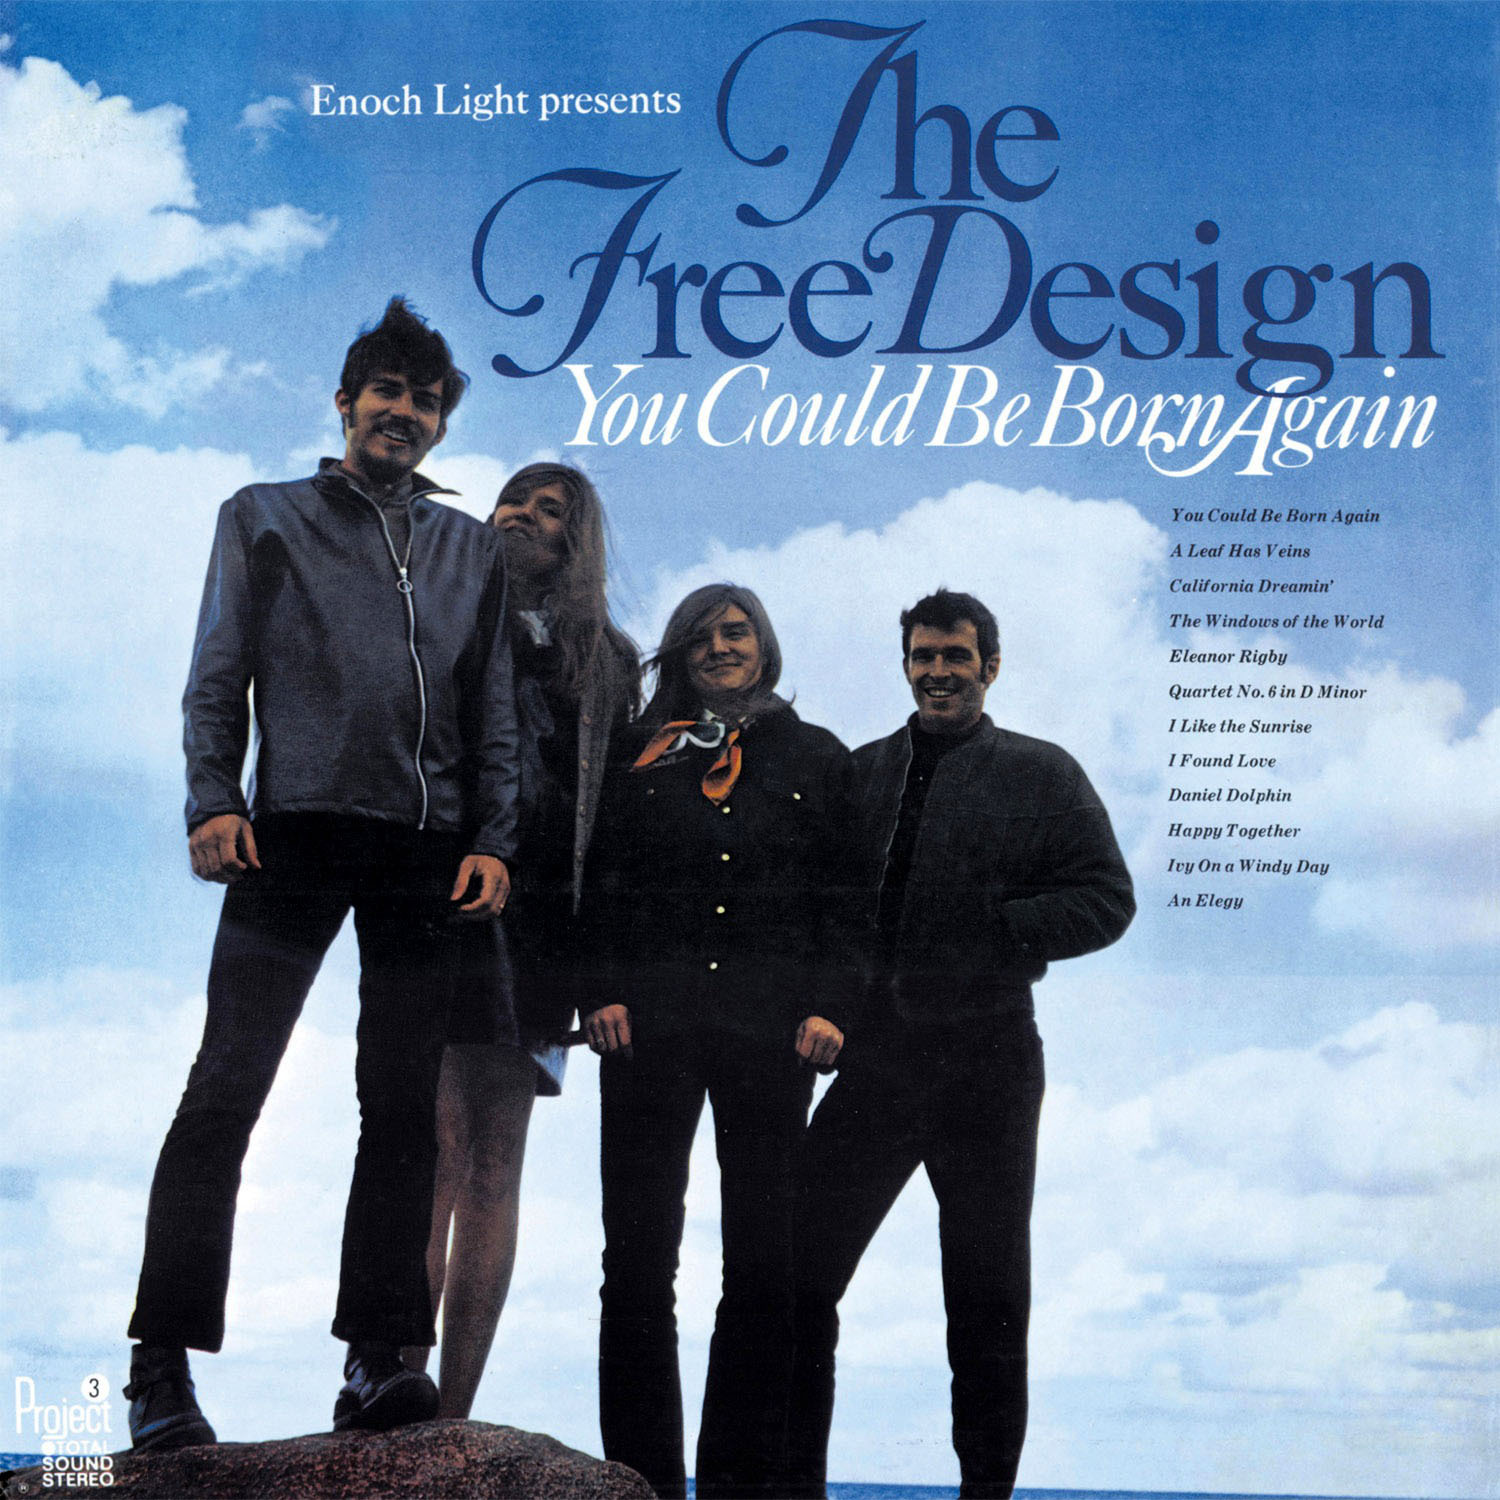 The Free Design (ザ・フリー・デザイン) 2ndアルバム『You Could Be Born Again (ユー・クッド・ビー・ボーン・アゲイン)』高画質ジャケット画像